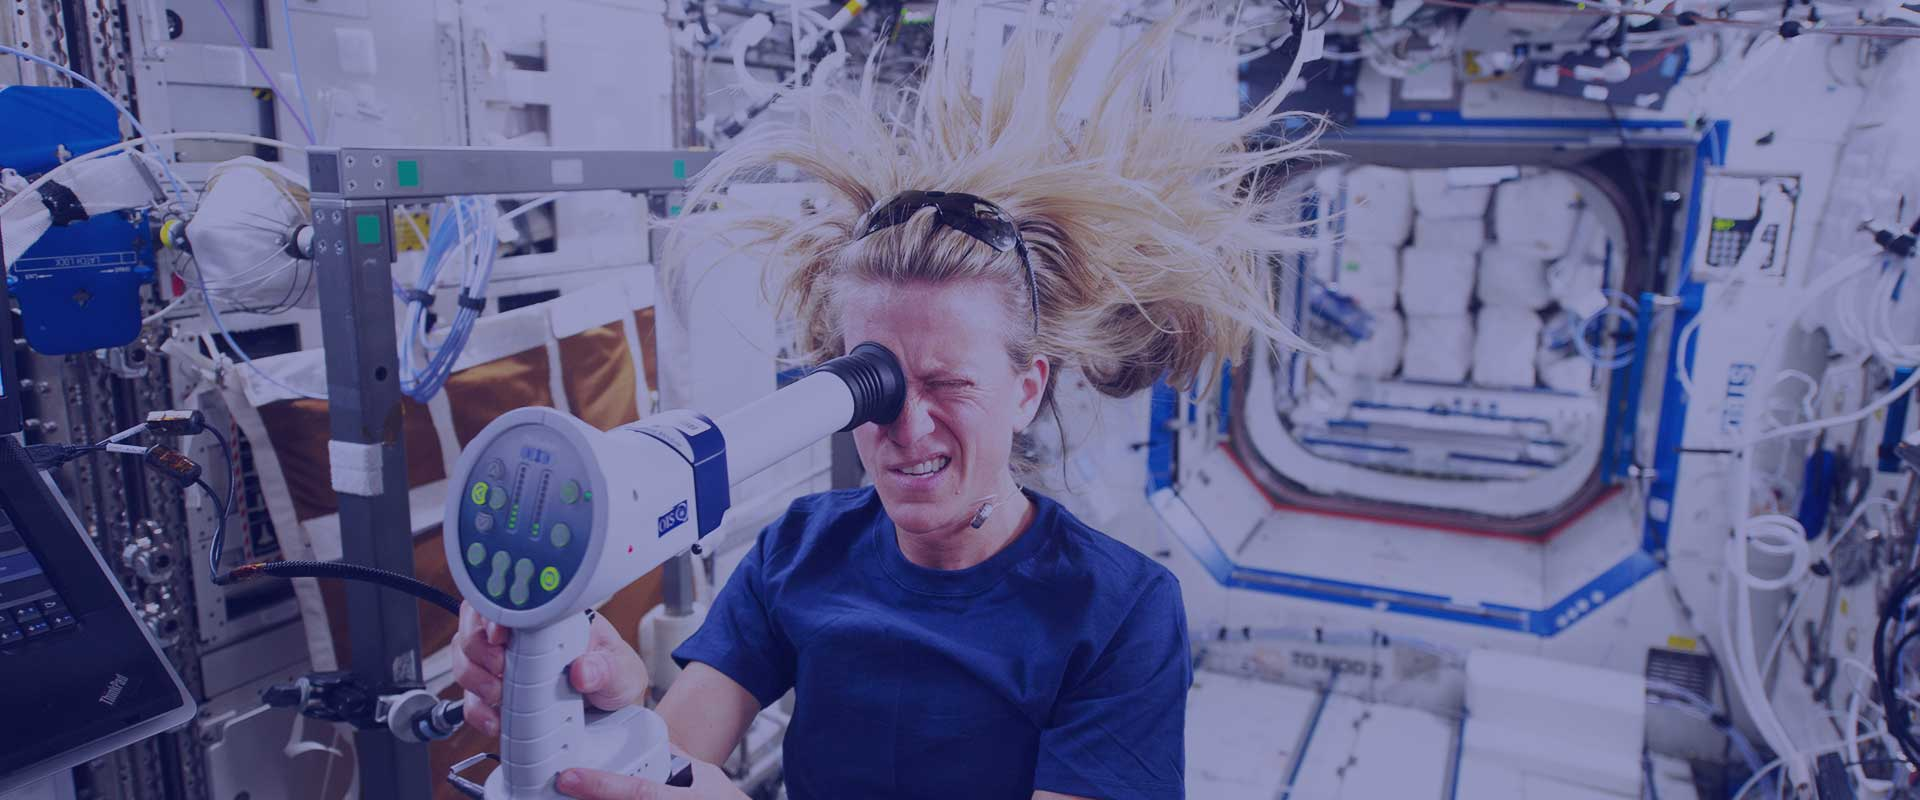 Astronaut checking her ocular health on board the ISS